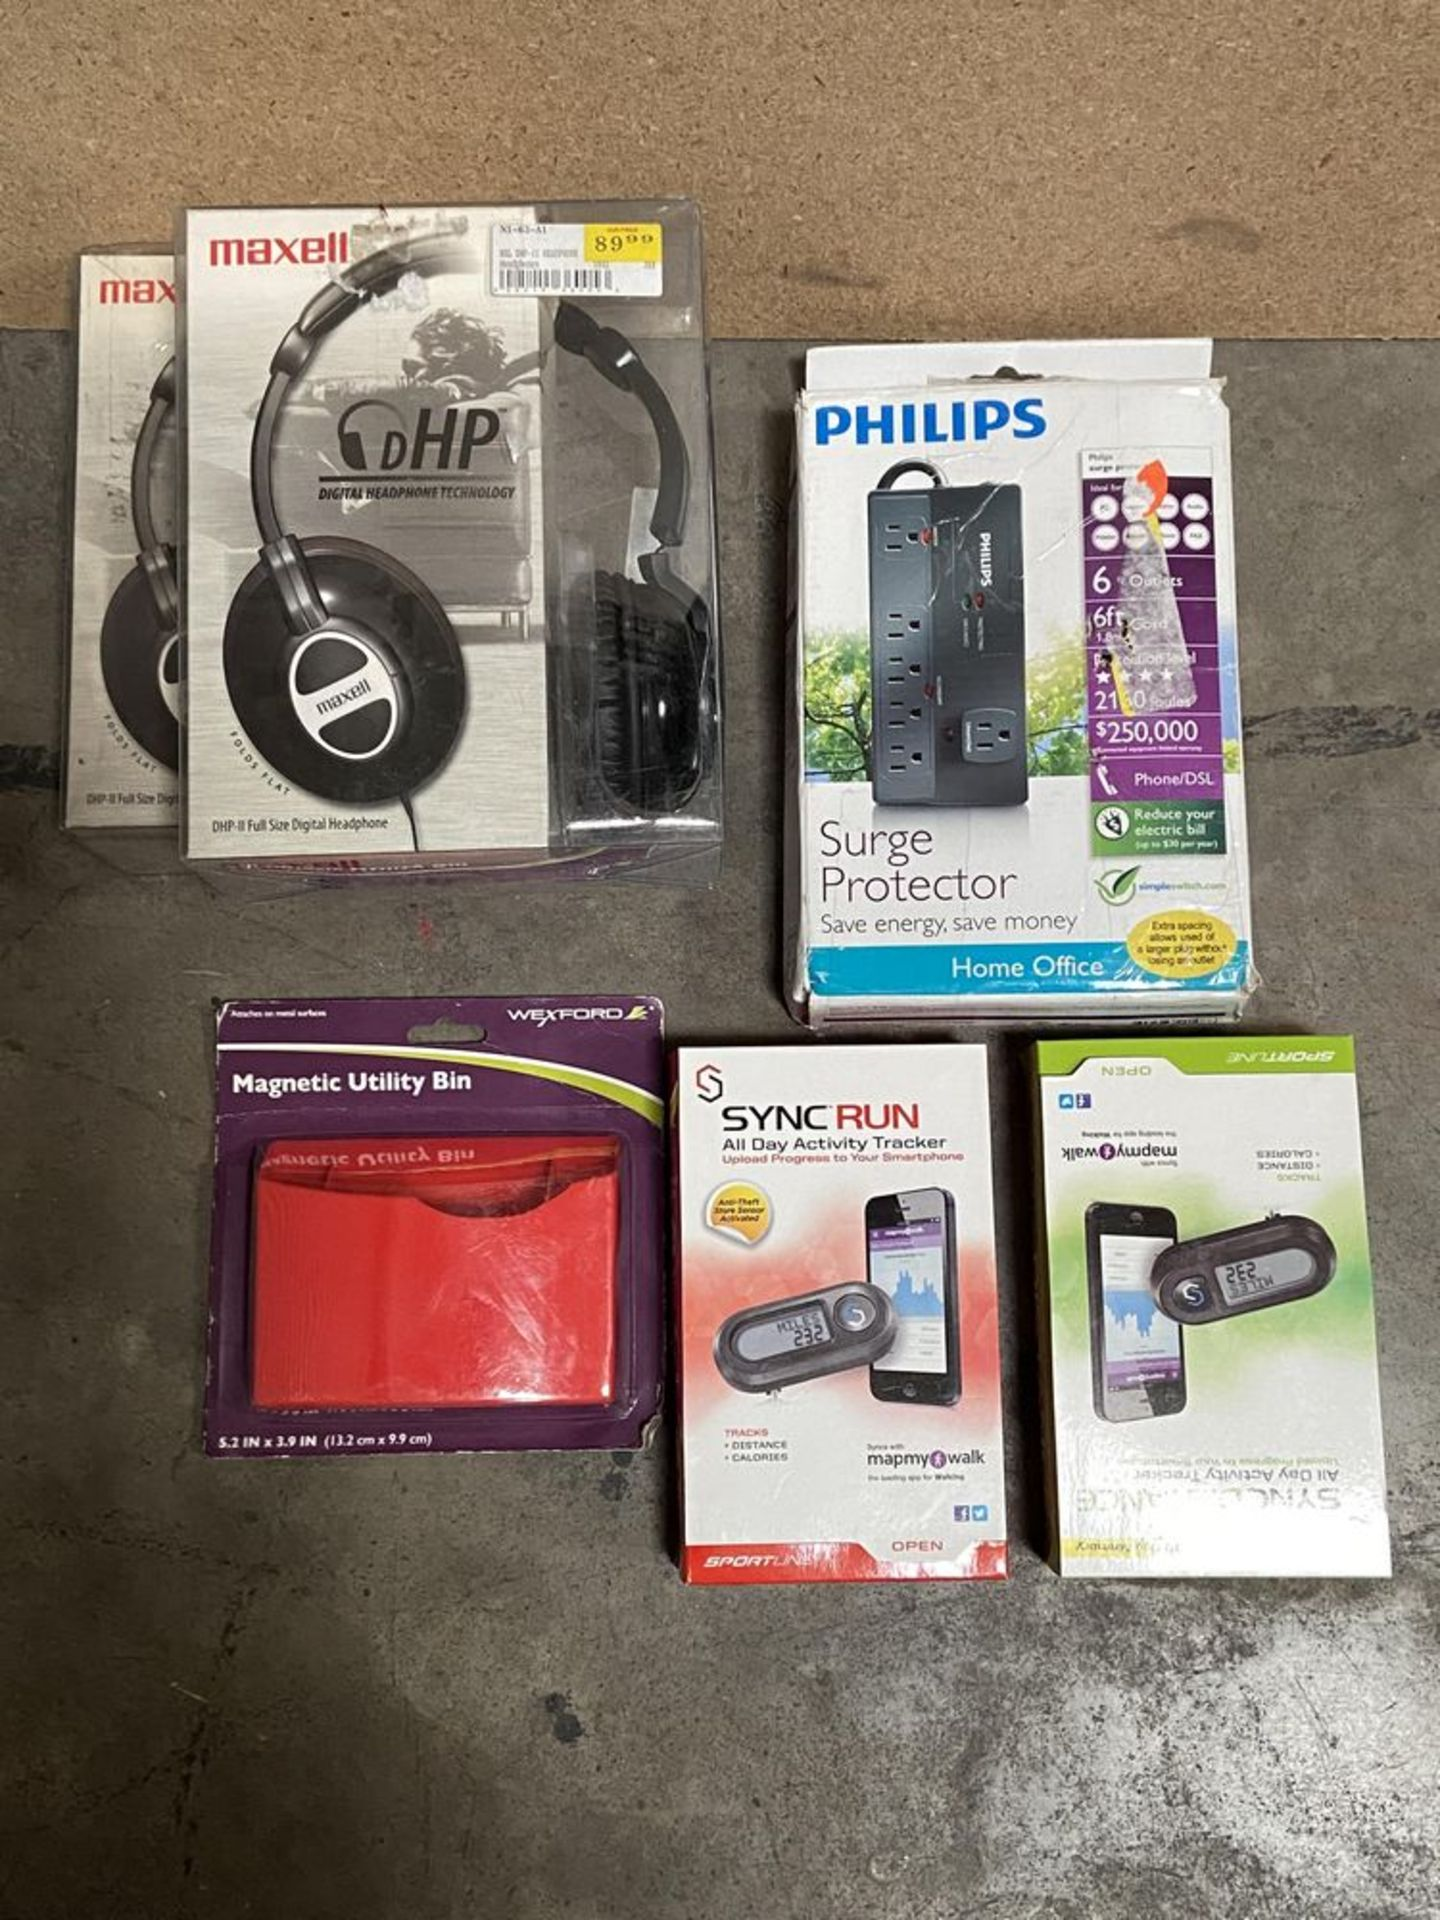 Lot 185 - Mixed Electronics lot: Maxell Headphones, Sportline, Philips Surge Protector, Etc